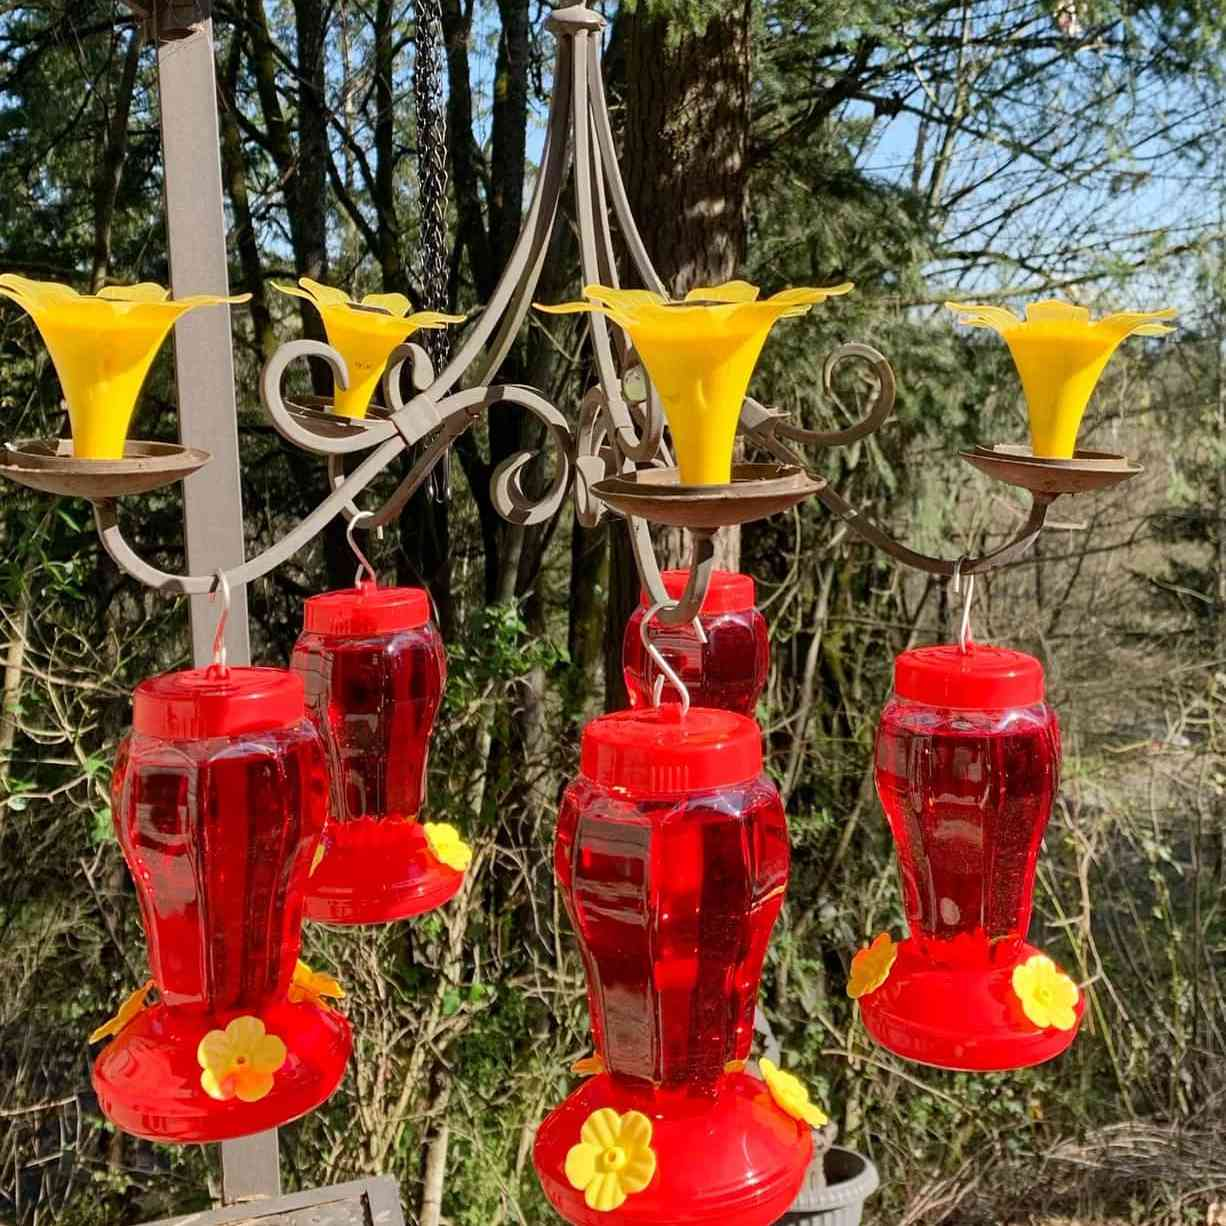 A chandelier with hummingbird feeders